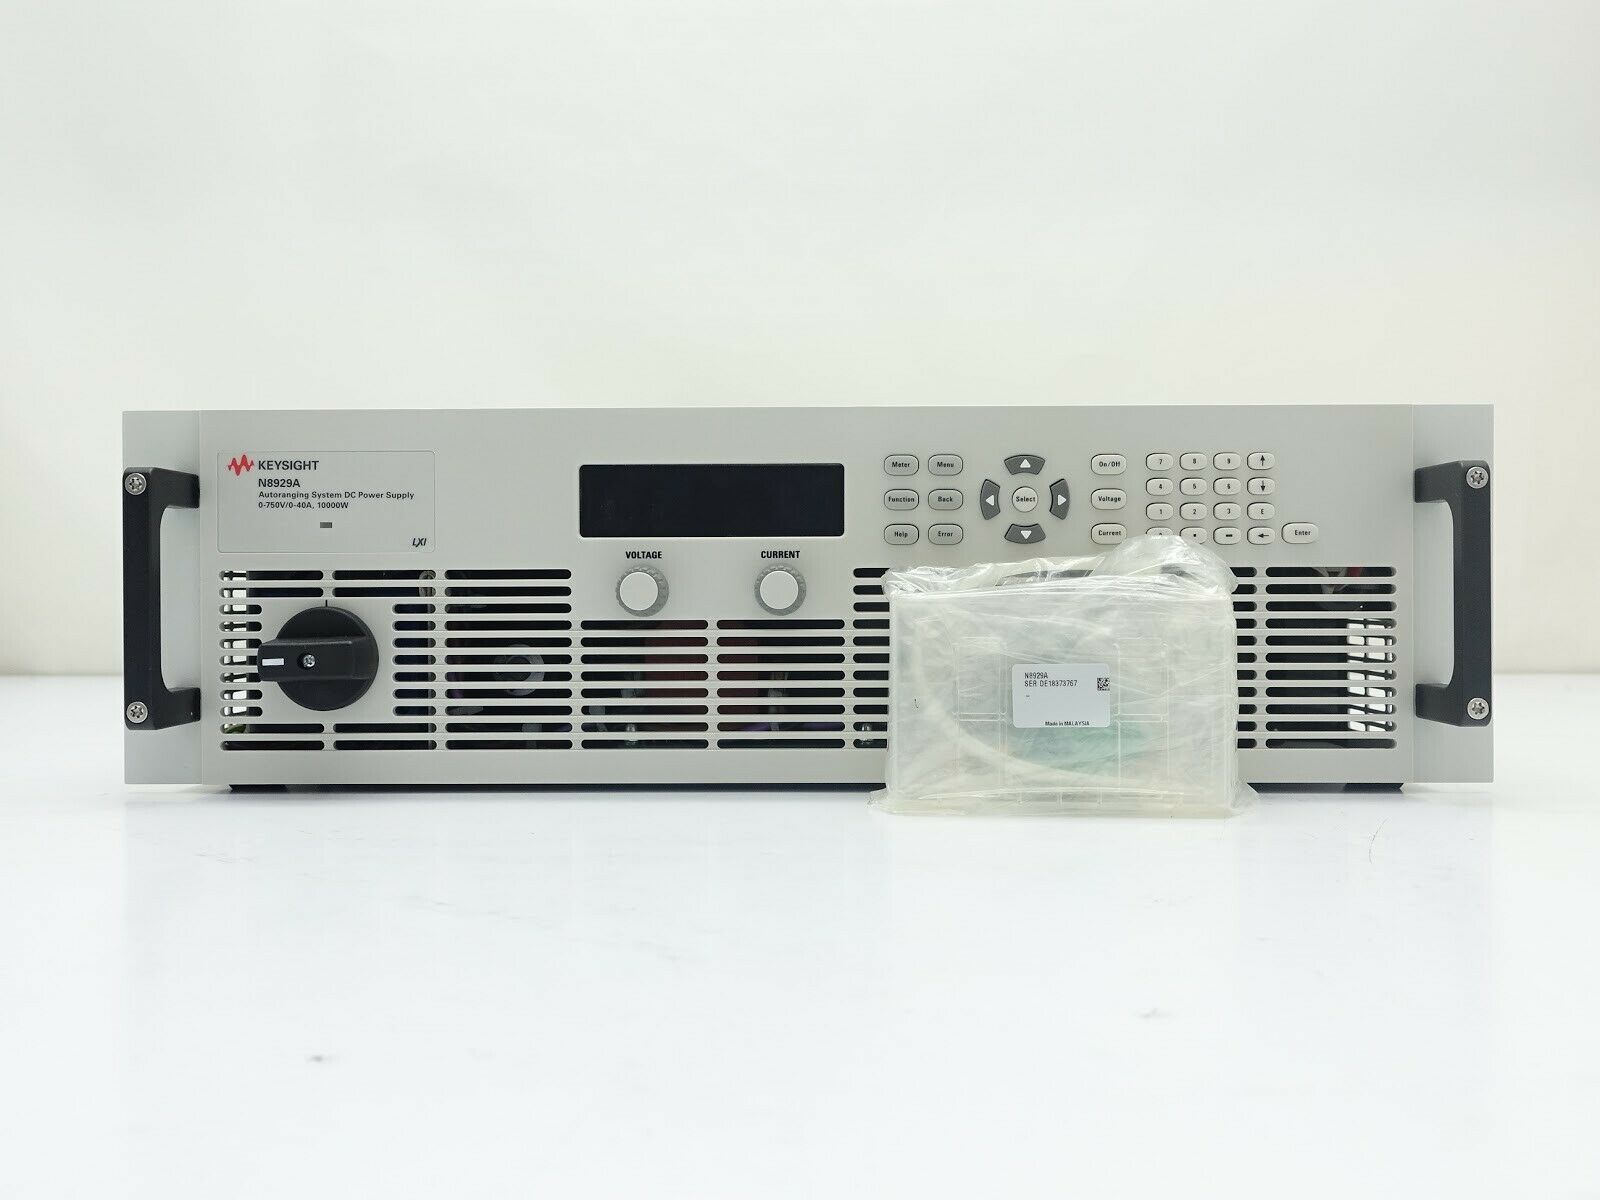 Keysight N8929A Autoranging System DC Power Supply / 750V / 40A / 10000W / 208 VAC